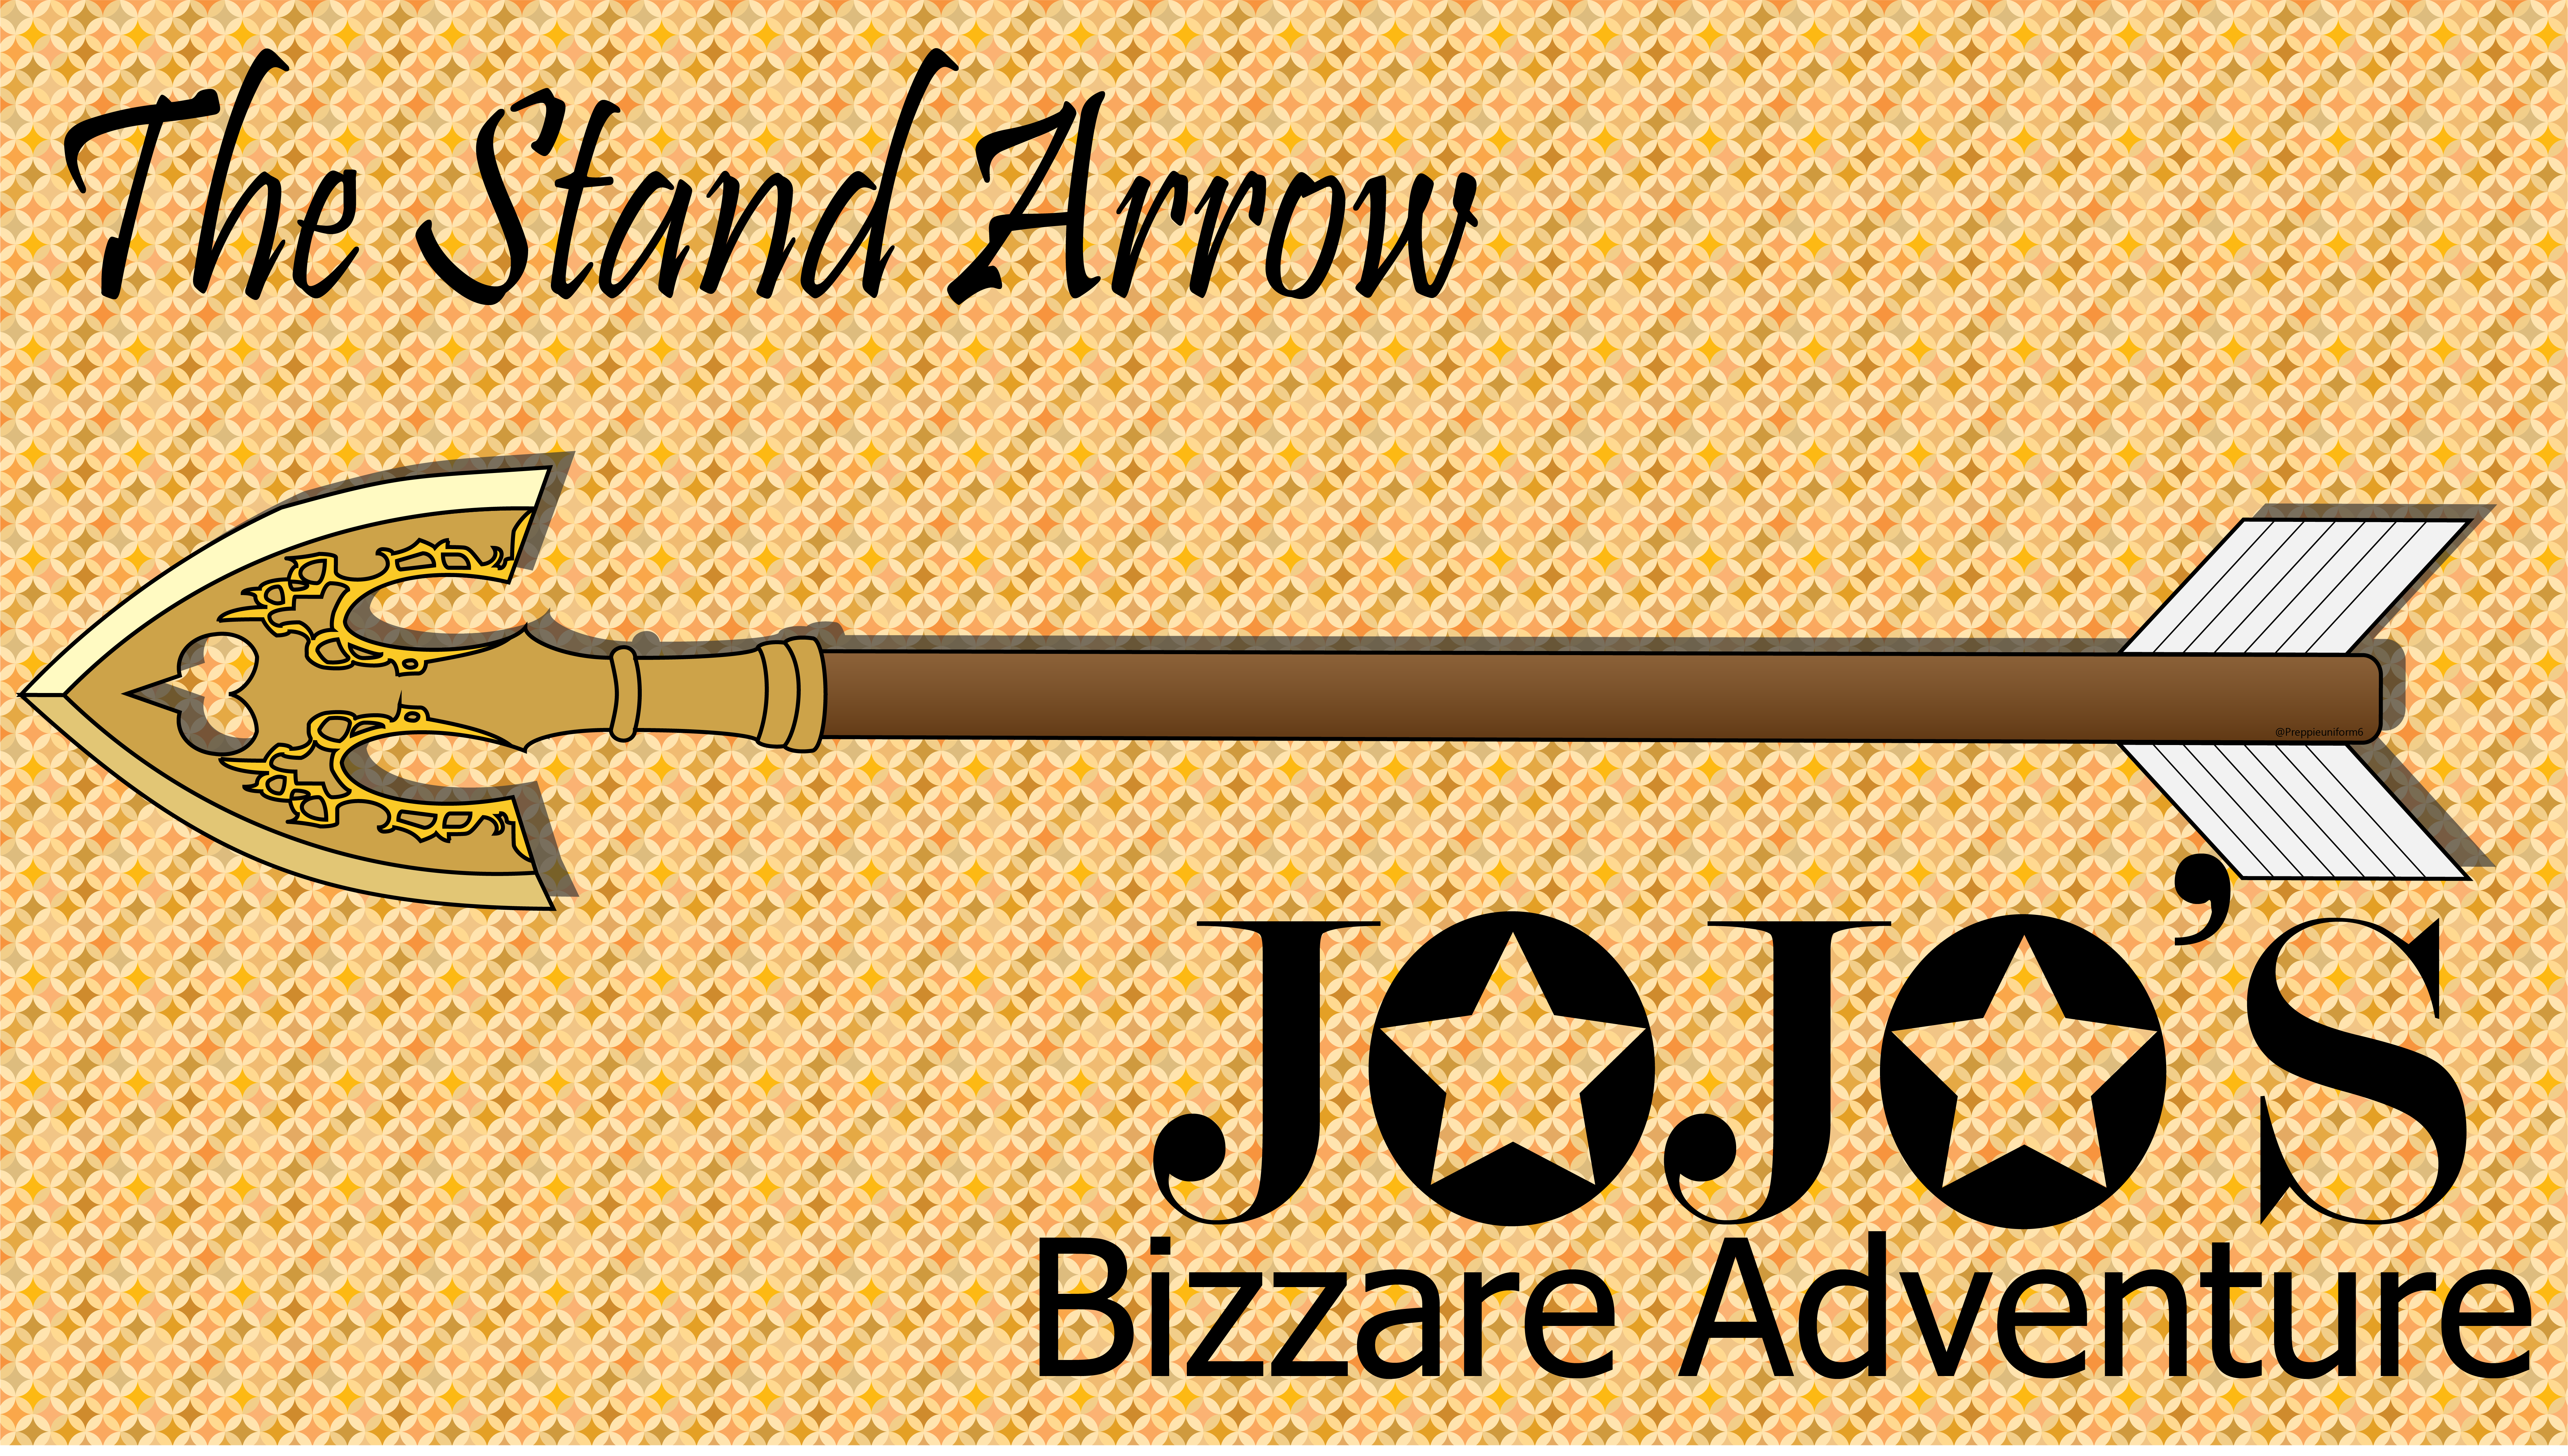 Jojo S Bizarre Adventure The Stand Arrow By Preppieuniform6 On Deviantart And you'll be inspired to. deviantart